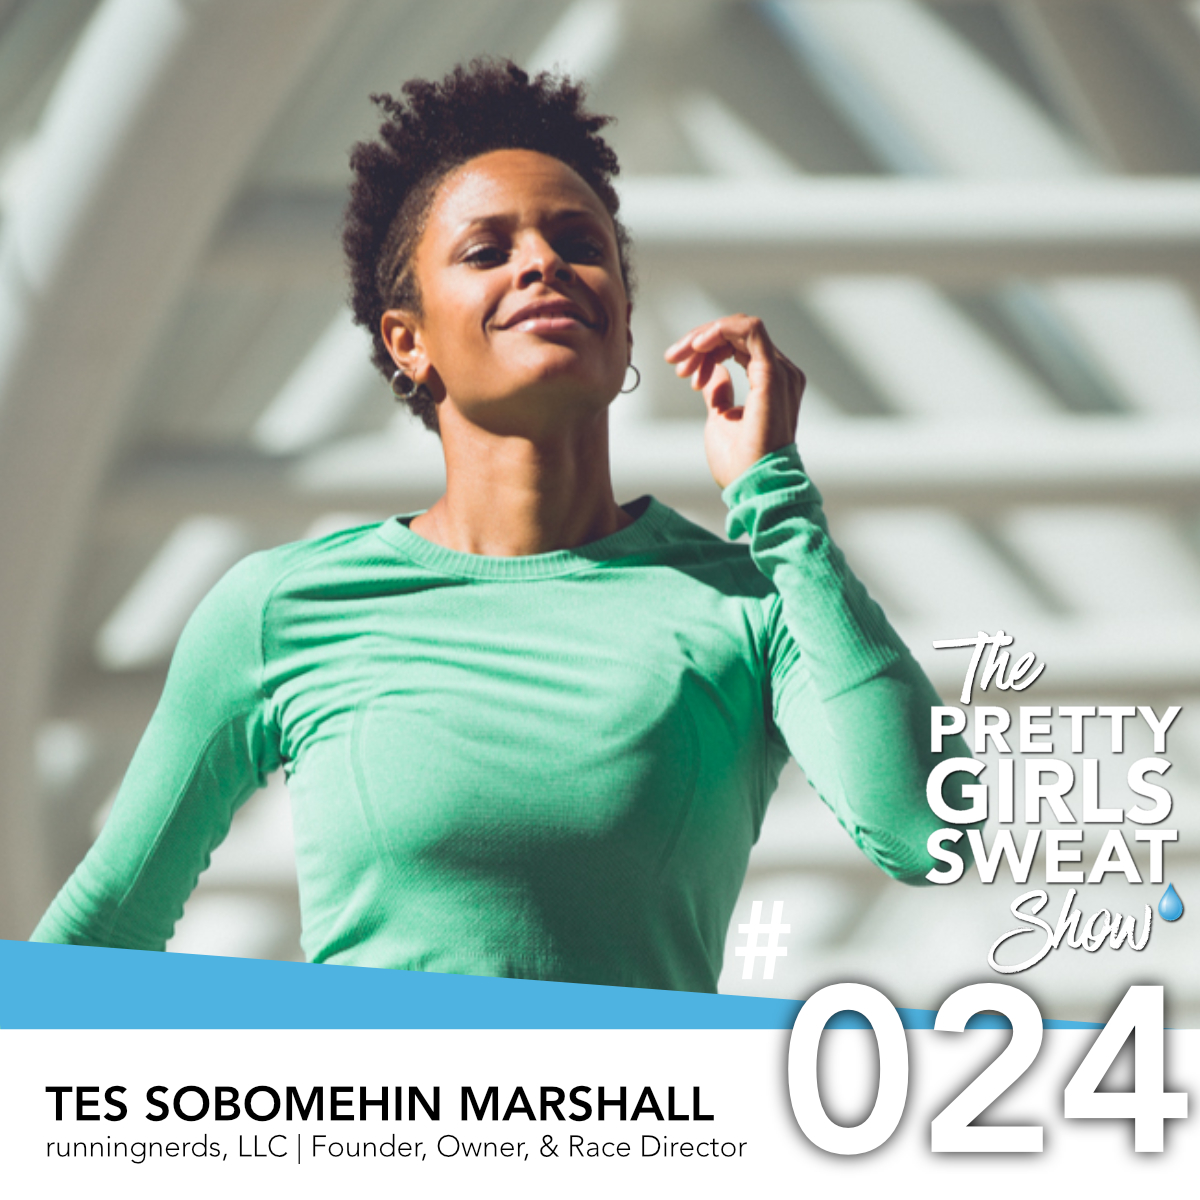 Tes Sobomehin | Founder, Owner, & Race Director, runningnerds, LLC